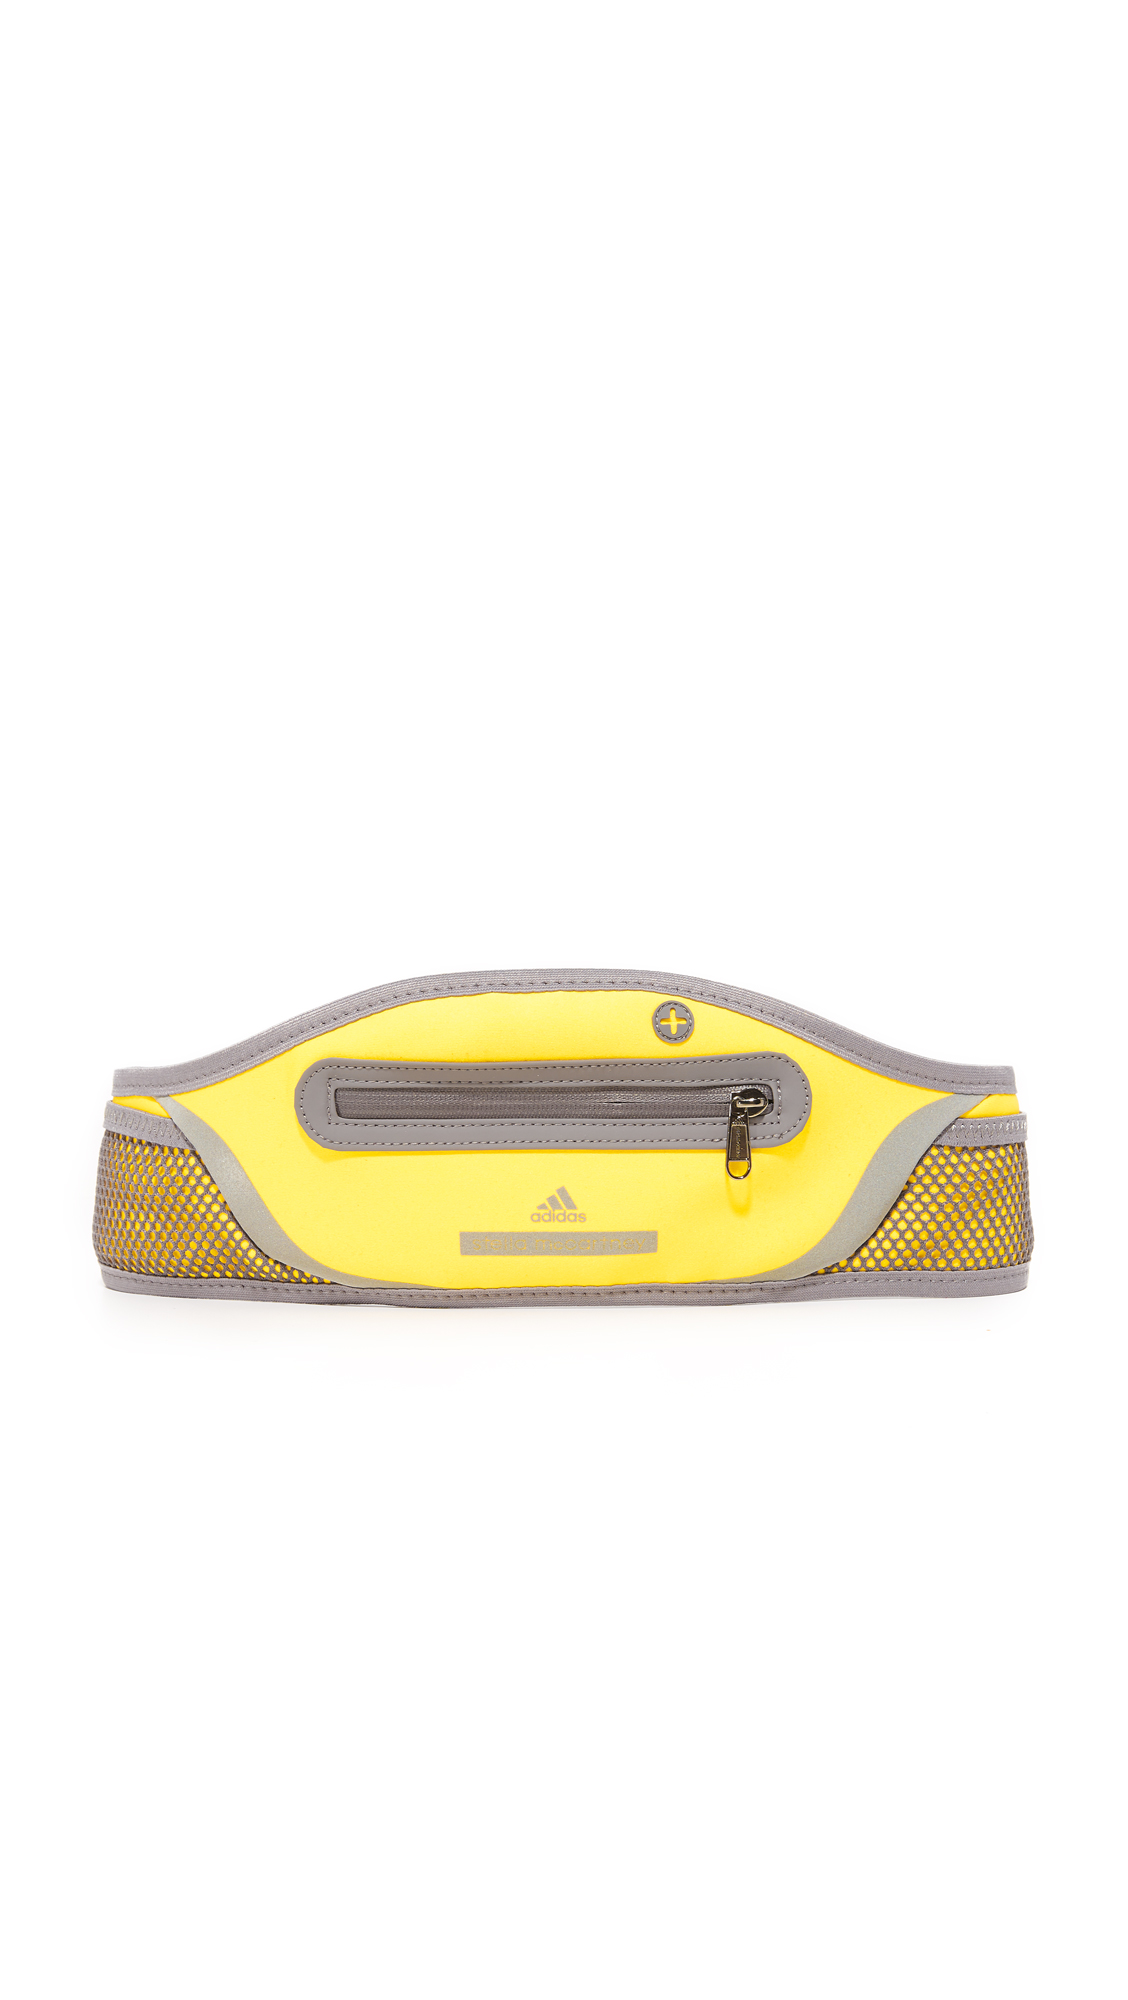 A performance ready adidas by Stella McCartney belt with a neoprene zip pouch and a pass through headphone port. Adjustable elastic belt with buckle closure. Imported, China. Measurements Width: 5in / 13cm Length: 33 35.5in / 84 90cm. Available sizes: